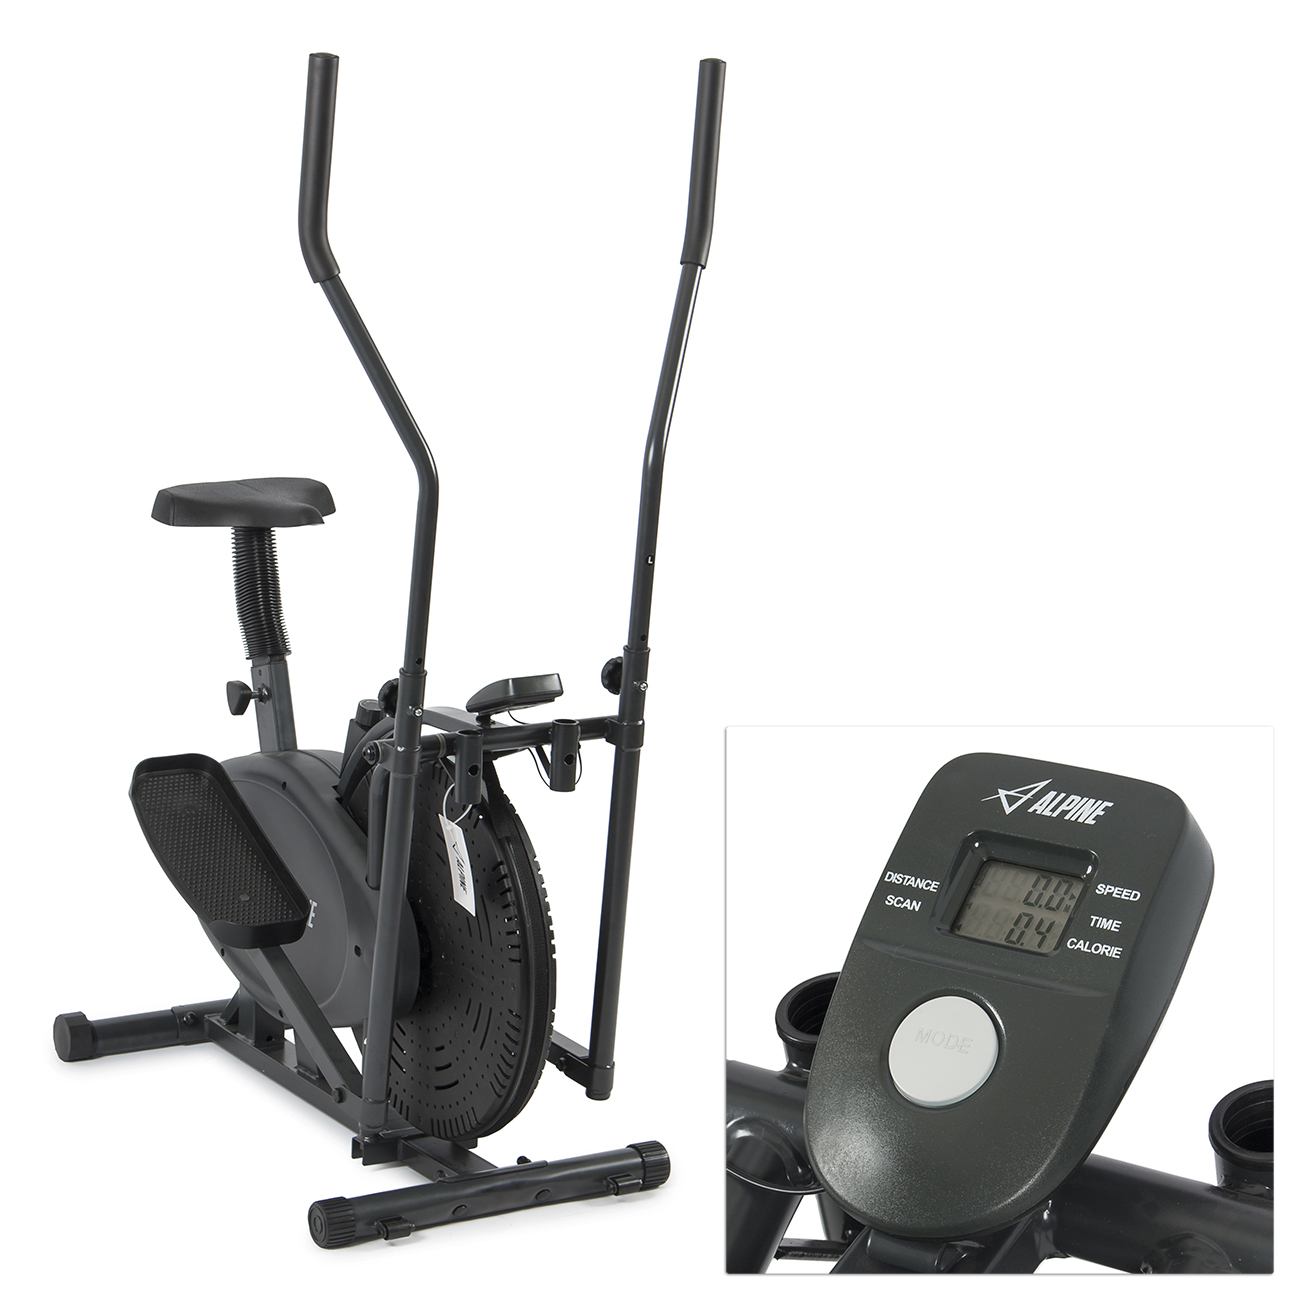 Elliptical Bike Ebay: Akonza Elliptical Bike 2 In 1 Cross Trainer Exercise